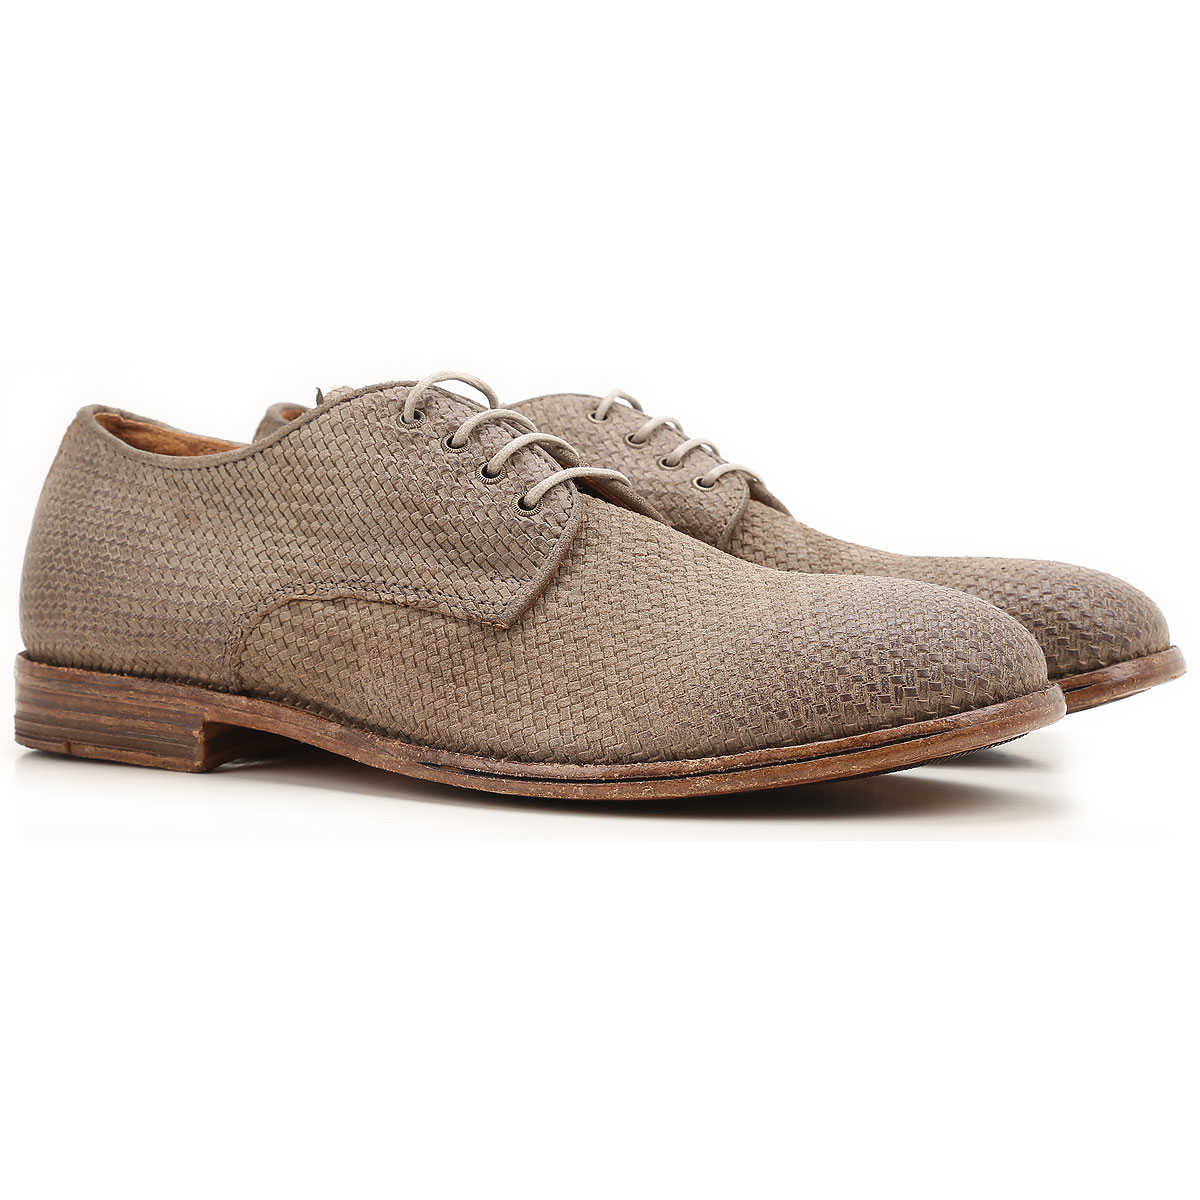 Moma Lace Up Shoes for Men Oxfords